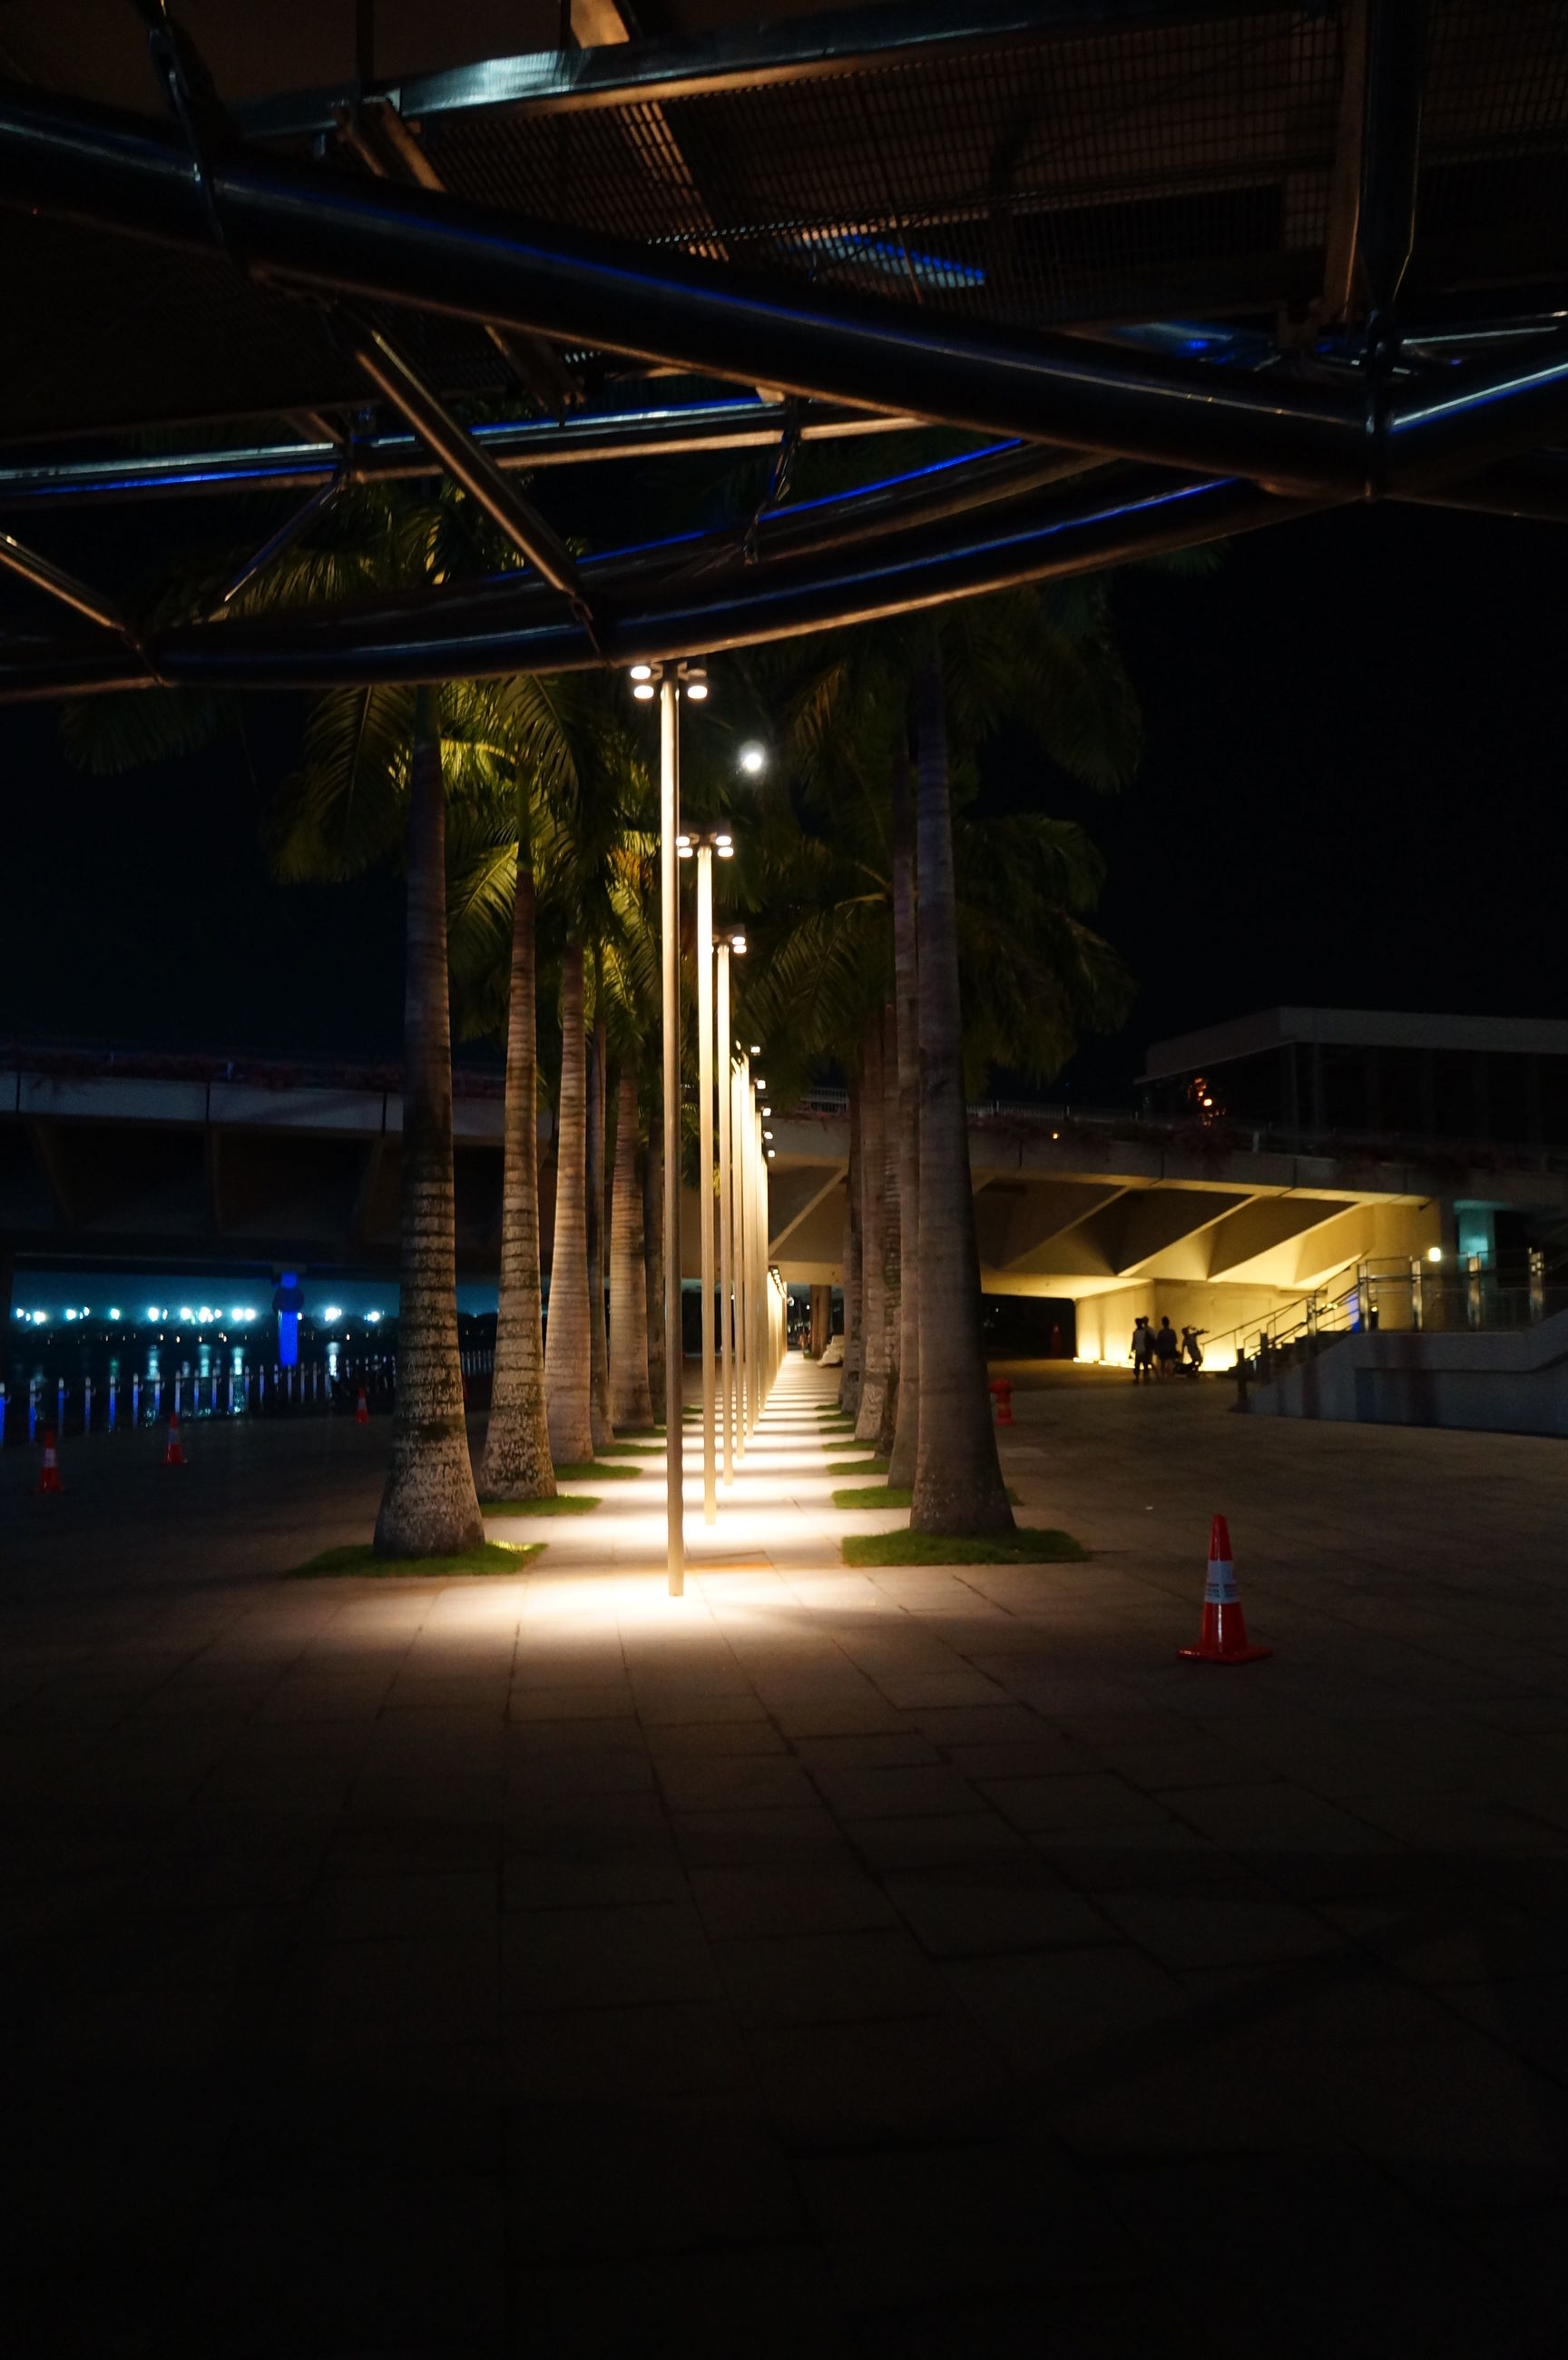 night, illuminated, built structure, architecture, bridge - man made structure, connection, city, the way forward, transportation, building exterior, street light, tree, lighting equipment, incidental people, street, architectural column, road, outdoors, engineering, city life